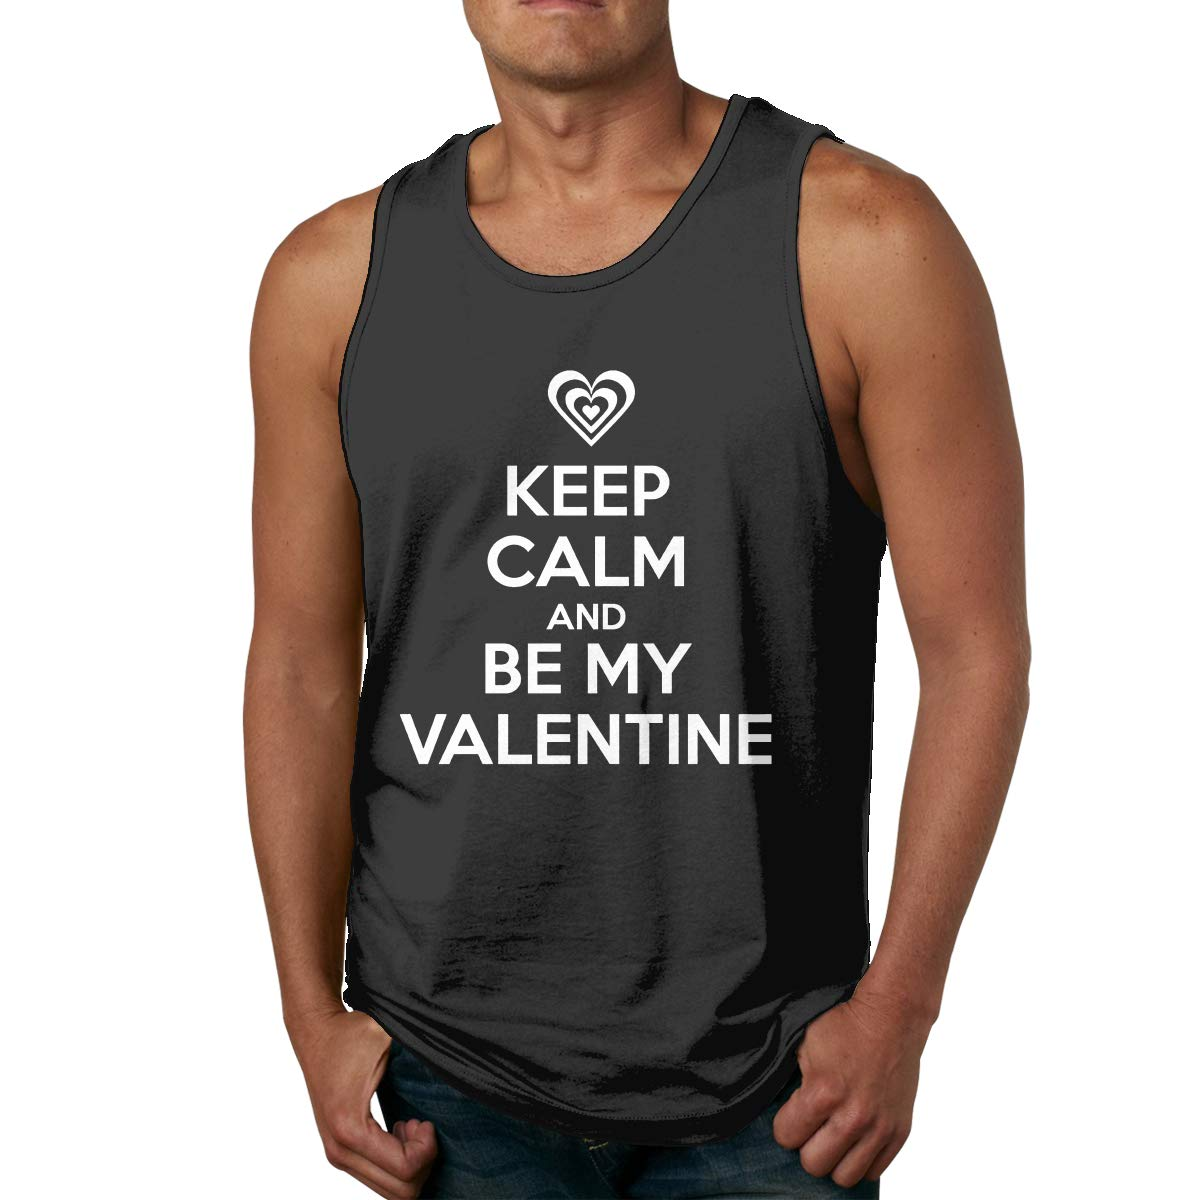 HUALA Man Casual Solid Color Crew Neck Keep Calm BE My Valentine Sports Tank Top